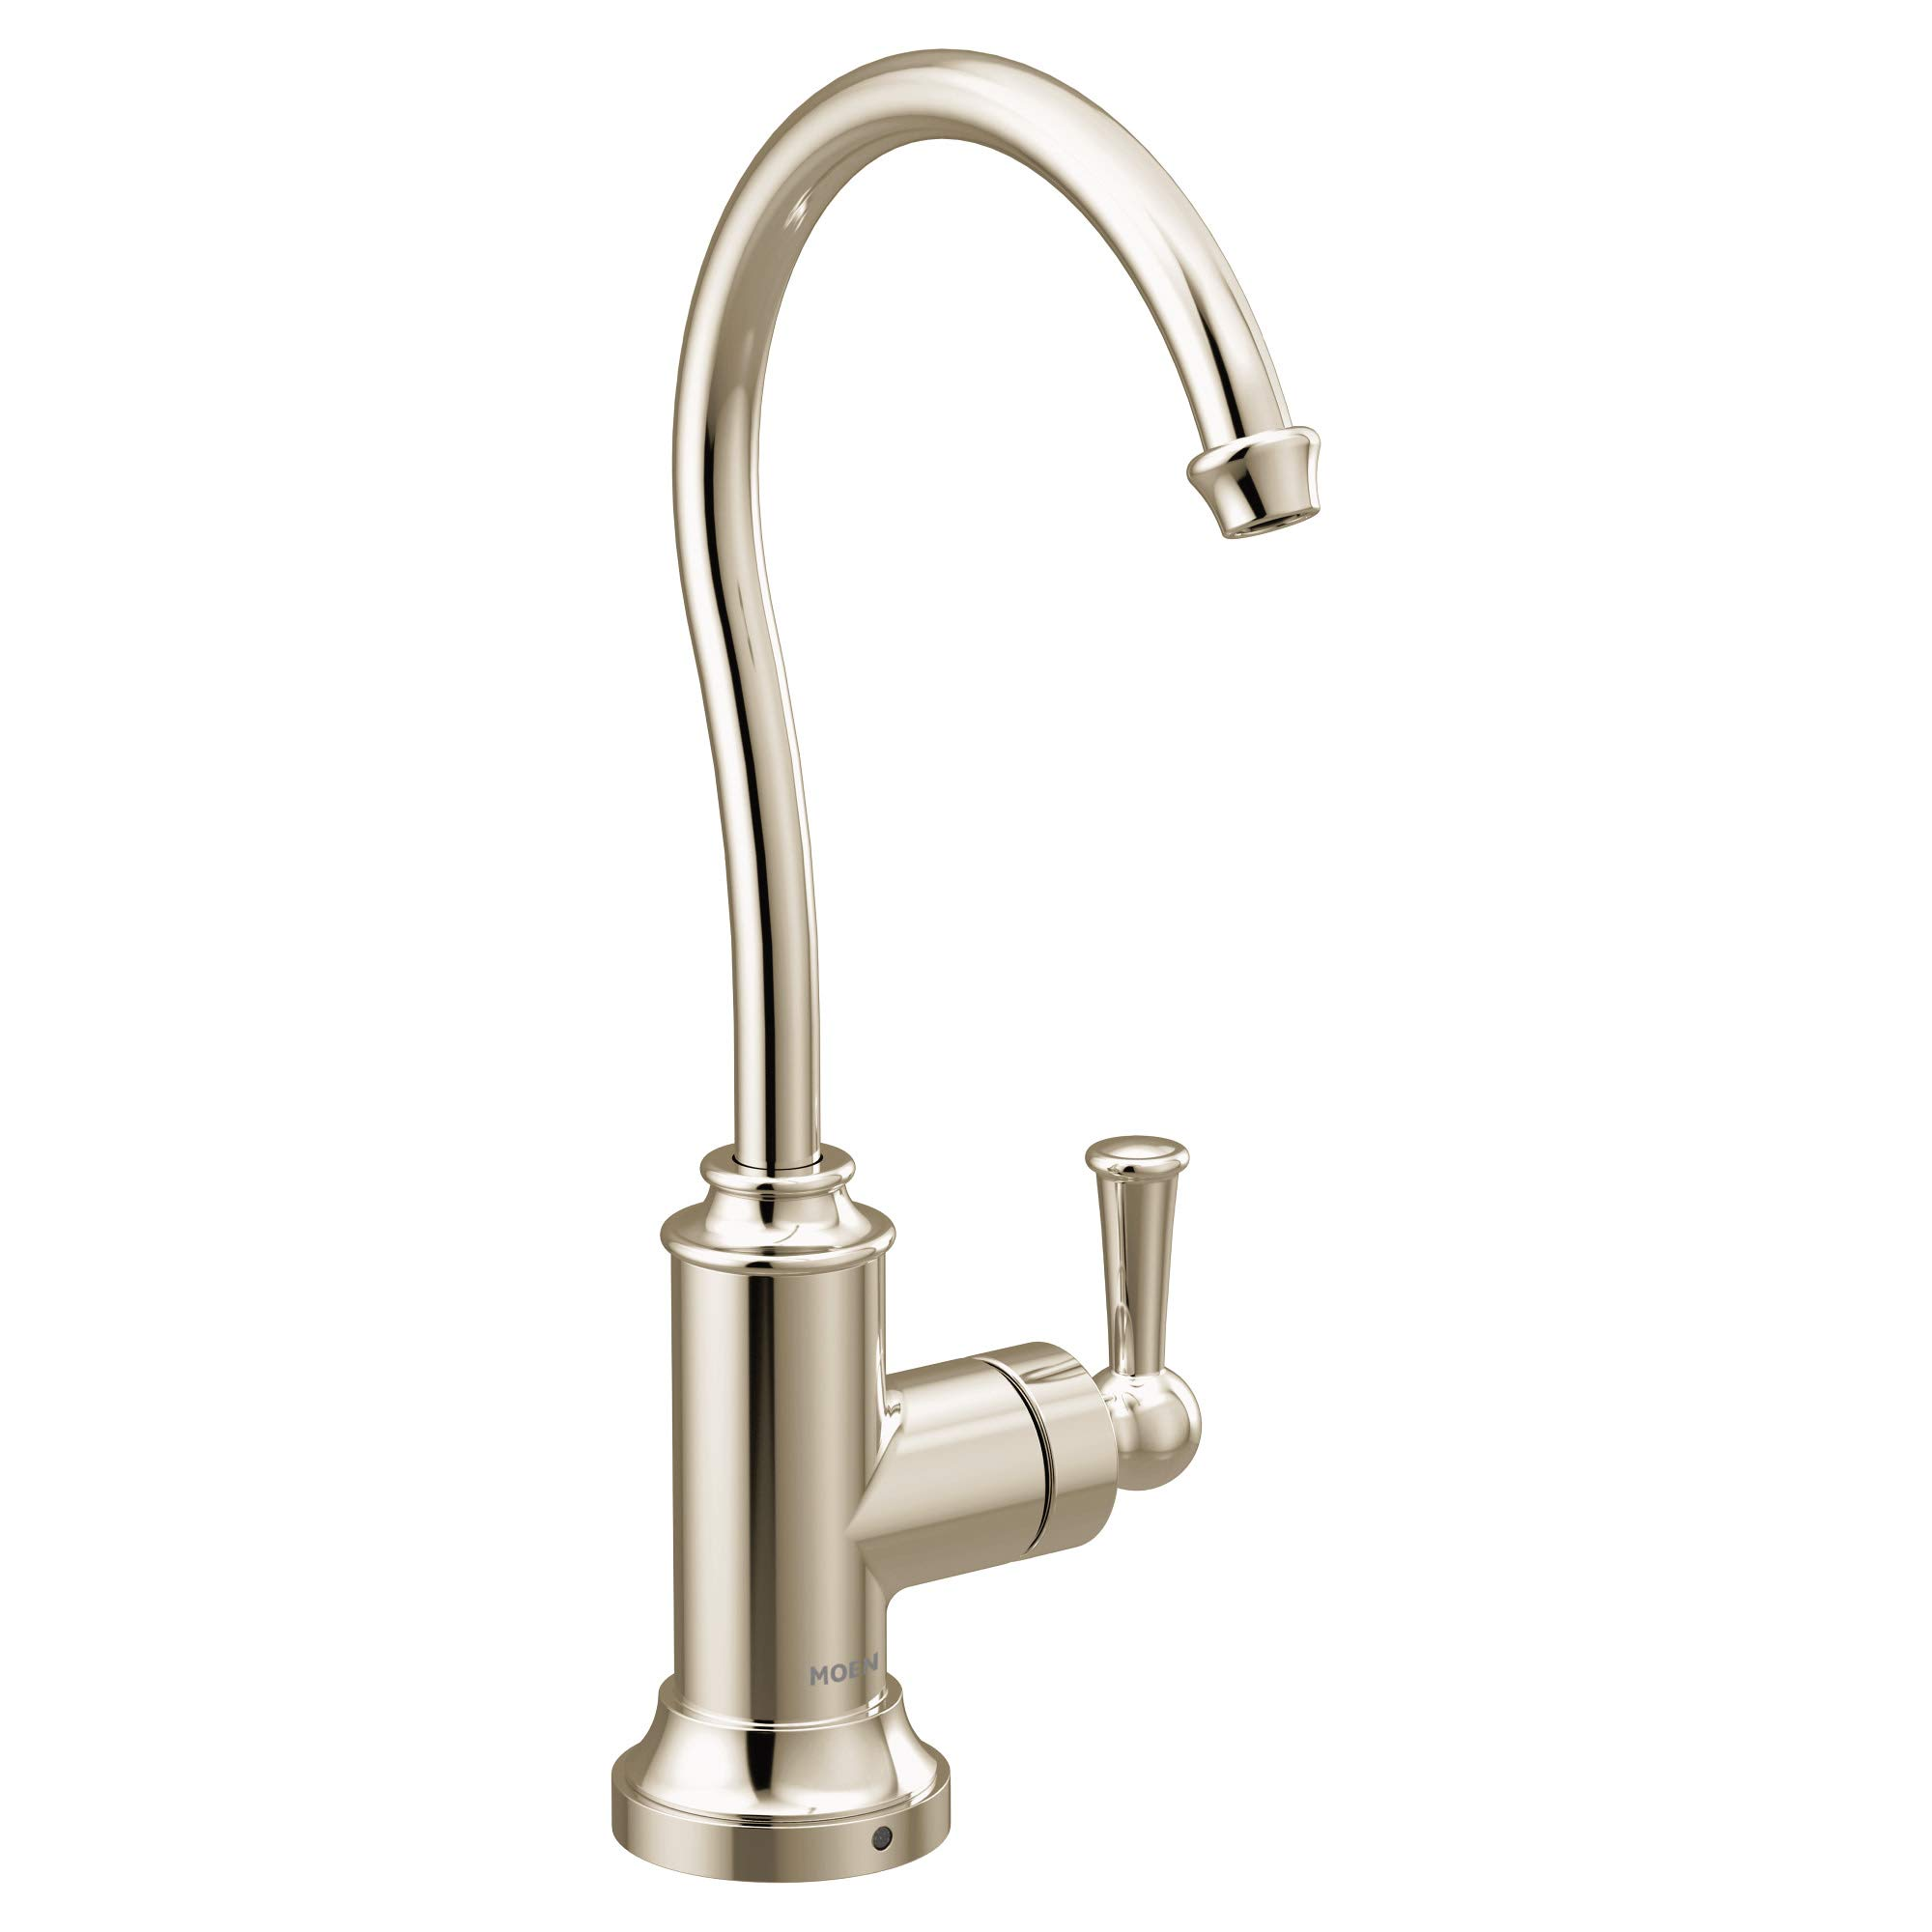 Moen S5510NL Sip Traditional Cold Water Kitchen Beverage Faucet with Optional Filtration System, Polished Nickel